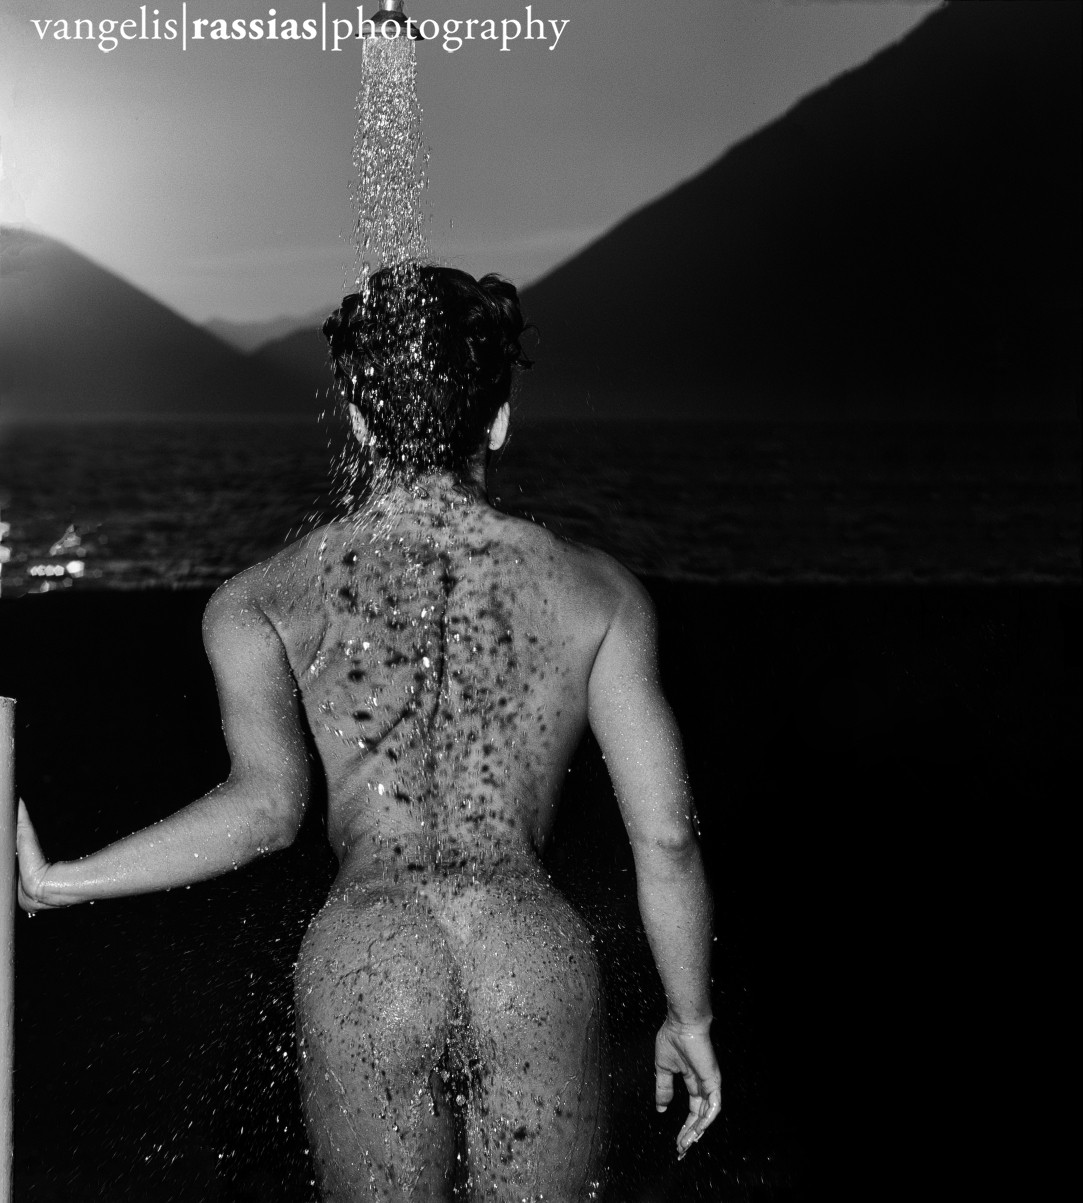 31-bb-bw-crop-christina-sous-la-douche-5-2001-144